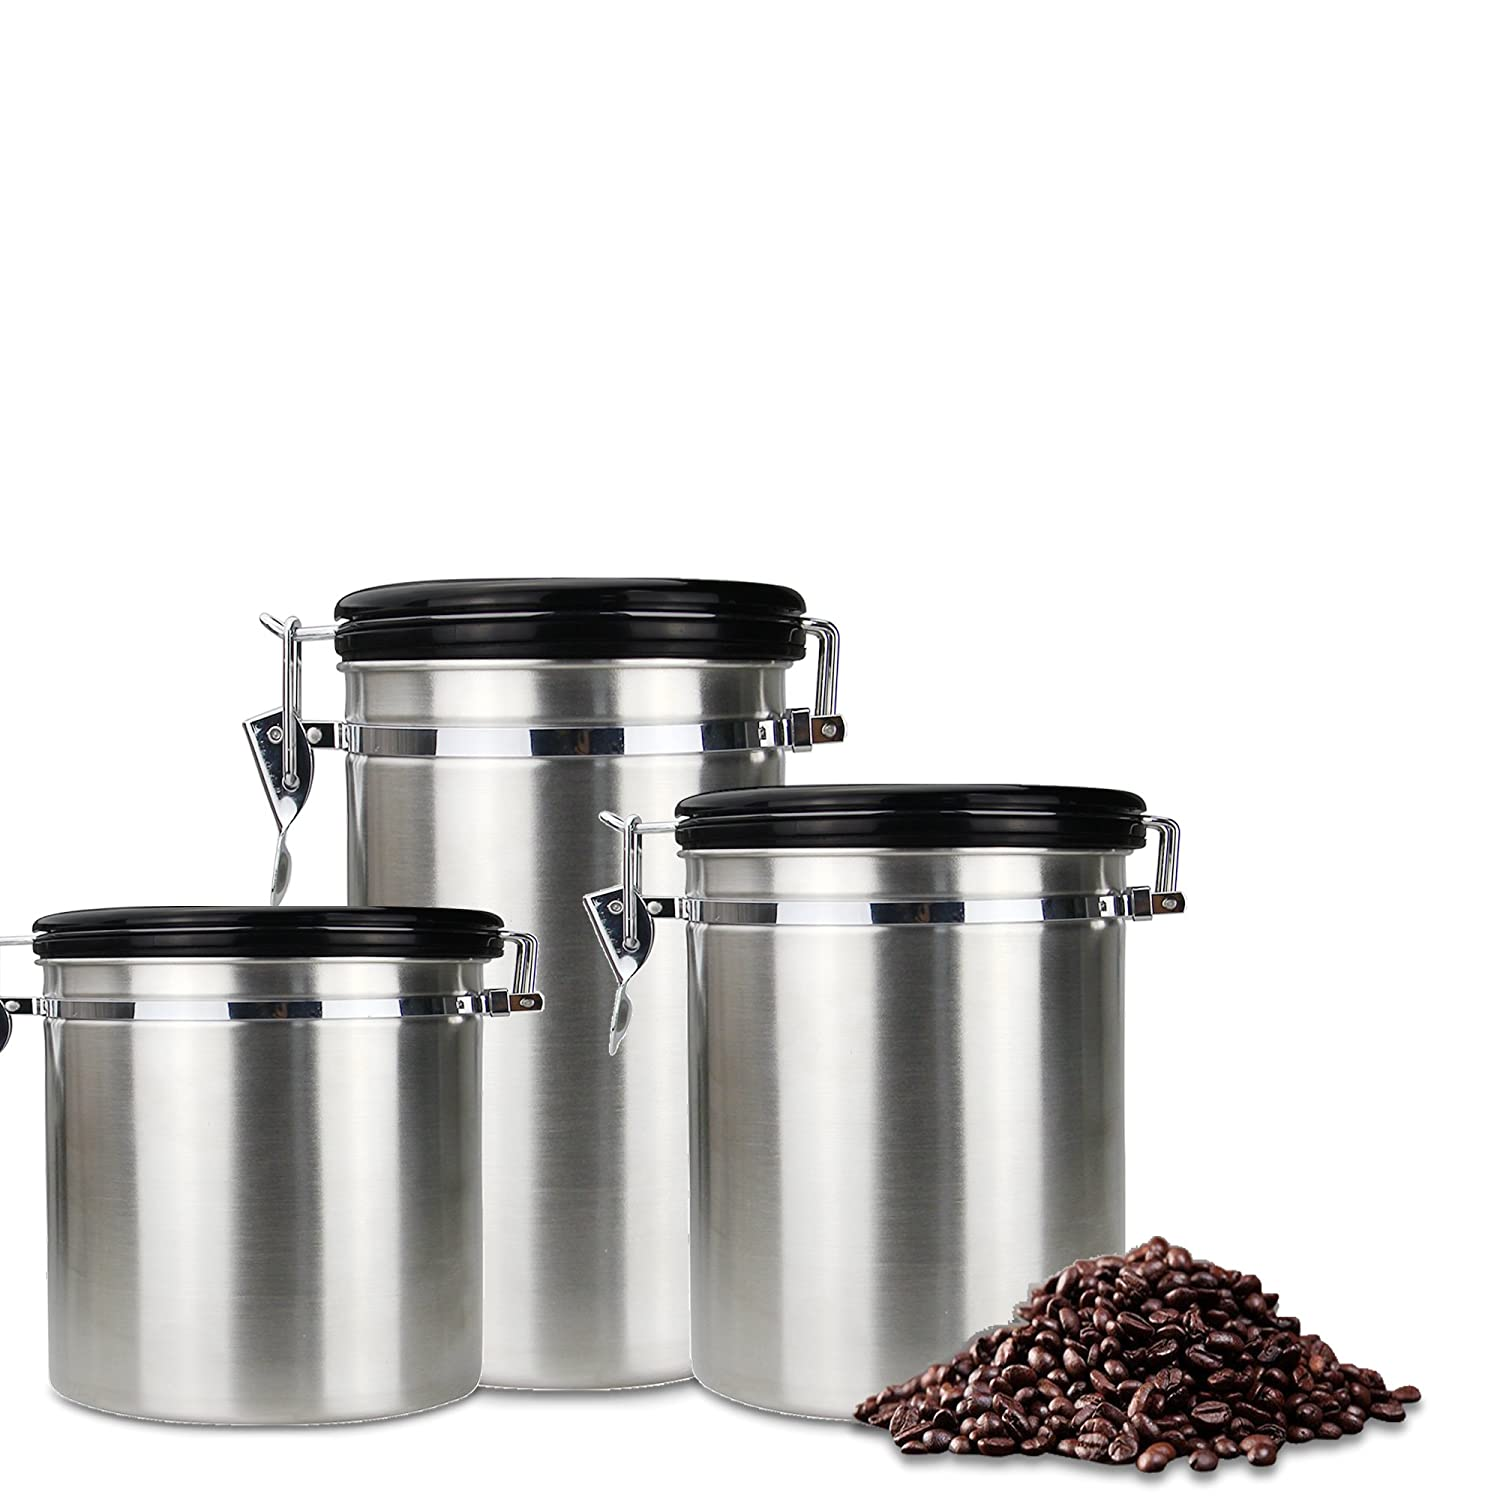 Airtight Coffee Canister Storage Cereal Dili Food Canister, Dried Fruit Storage Tank Airtight Lids Stainless Steel Coffee Canister Container with Valve-S-30.4 oz